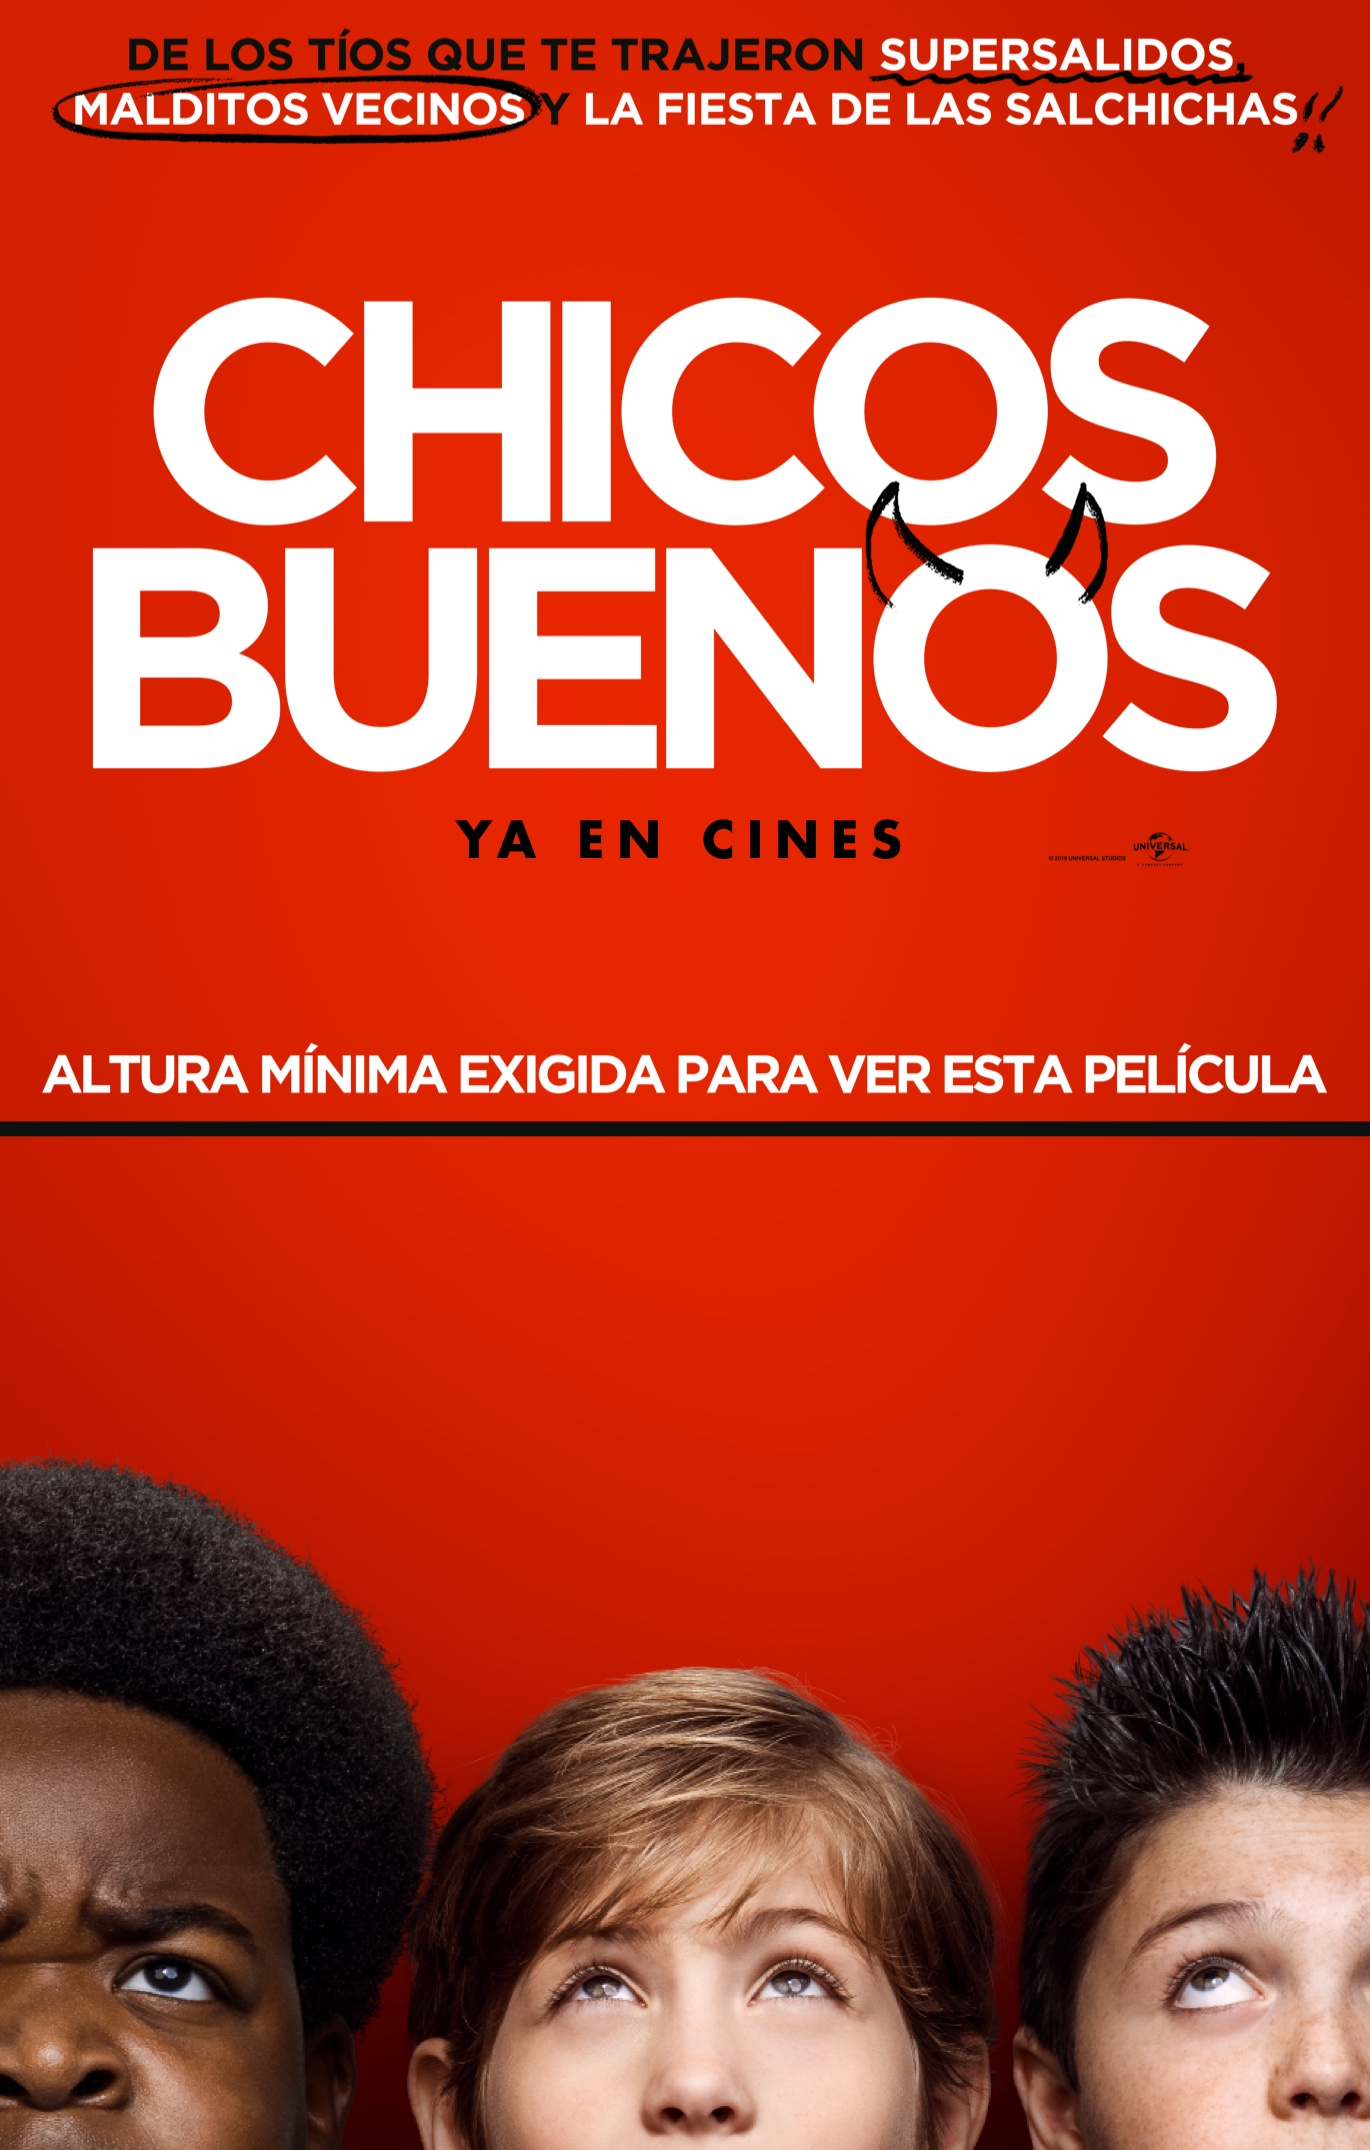 Poster for CHICOS BUENOS